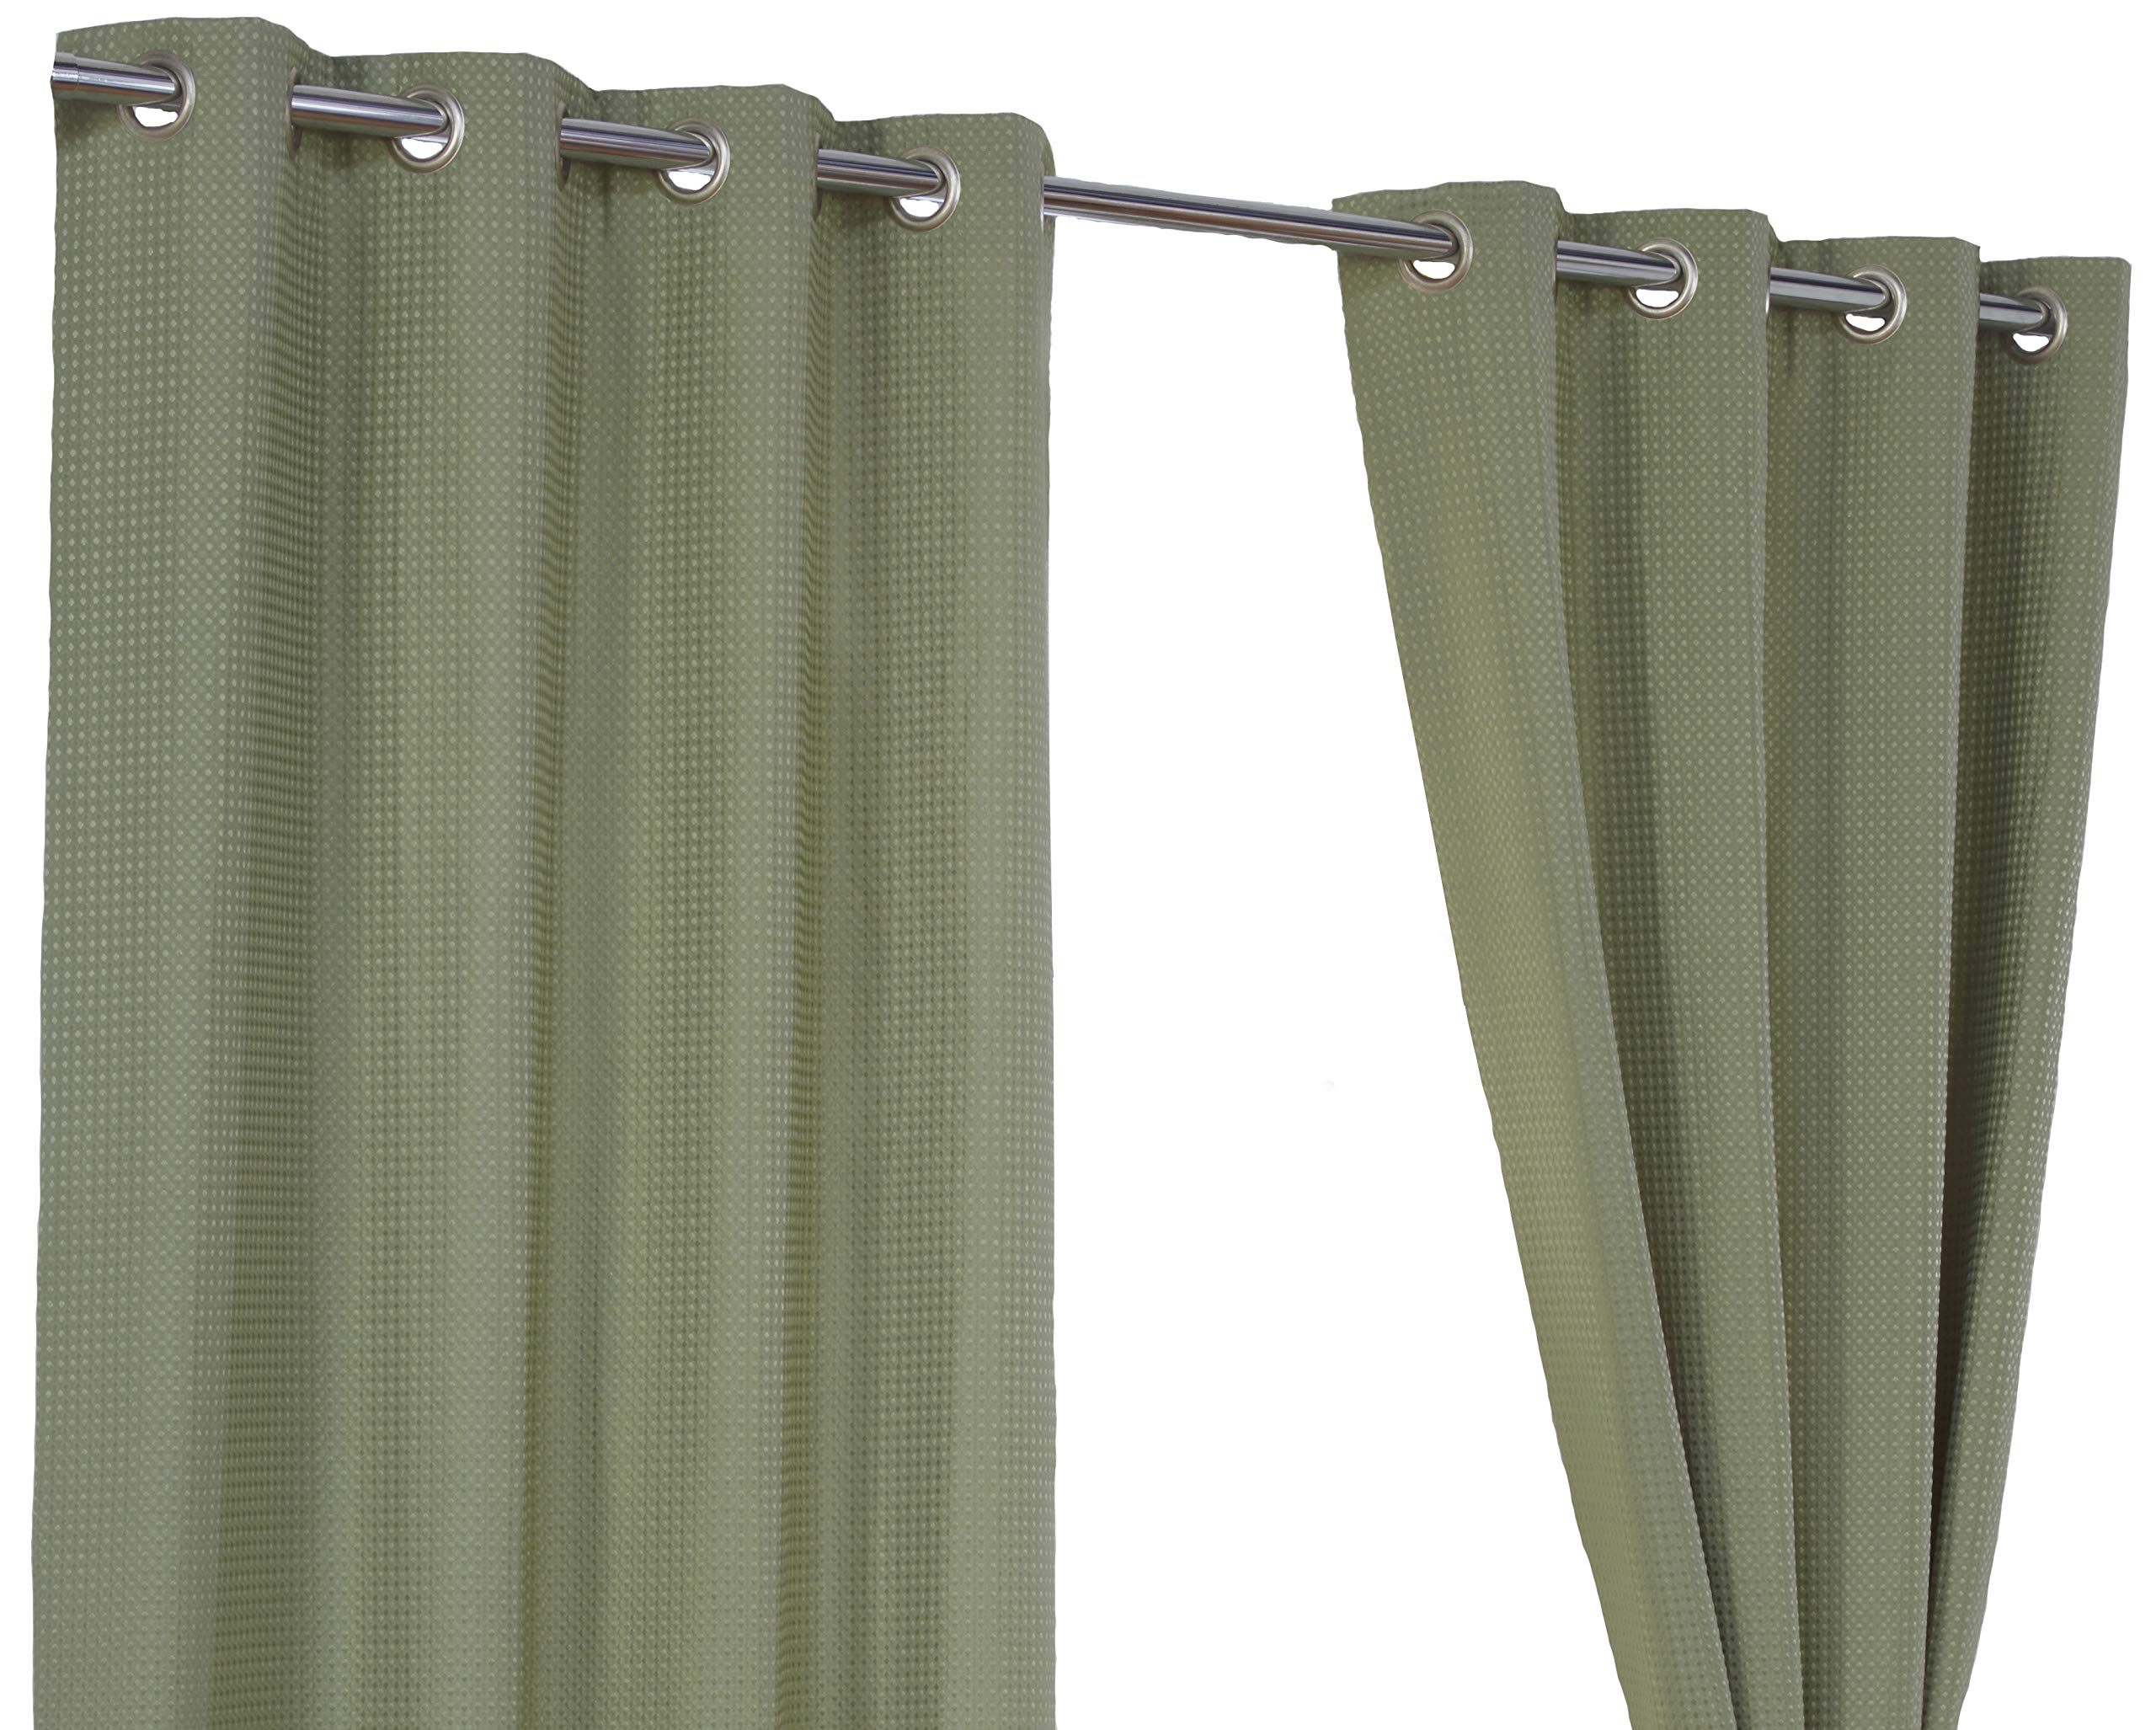 Waffle Green Ring Top Eyelet Fully Lined Readymade Curtain Pair 46x54in116x137cm Approximately